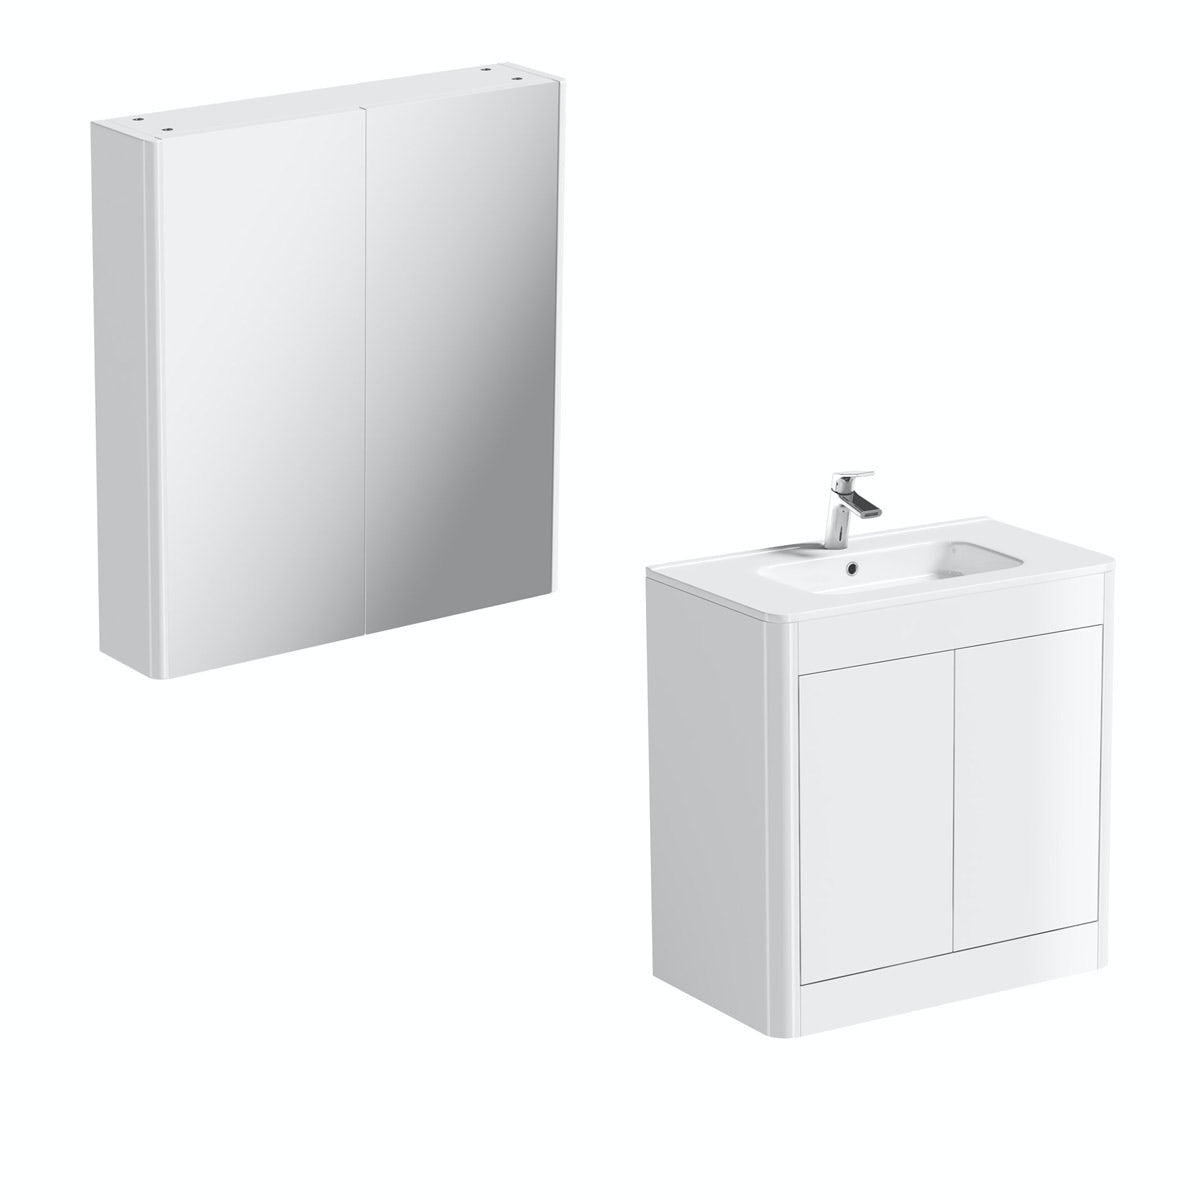 Mode Carter ice white vanity unit 800mm and mirror